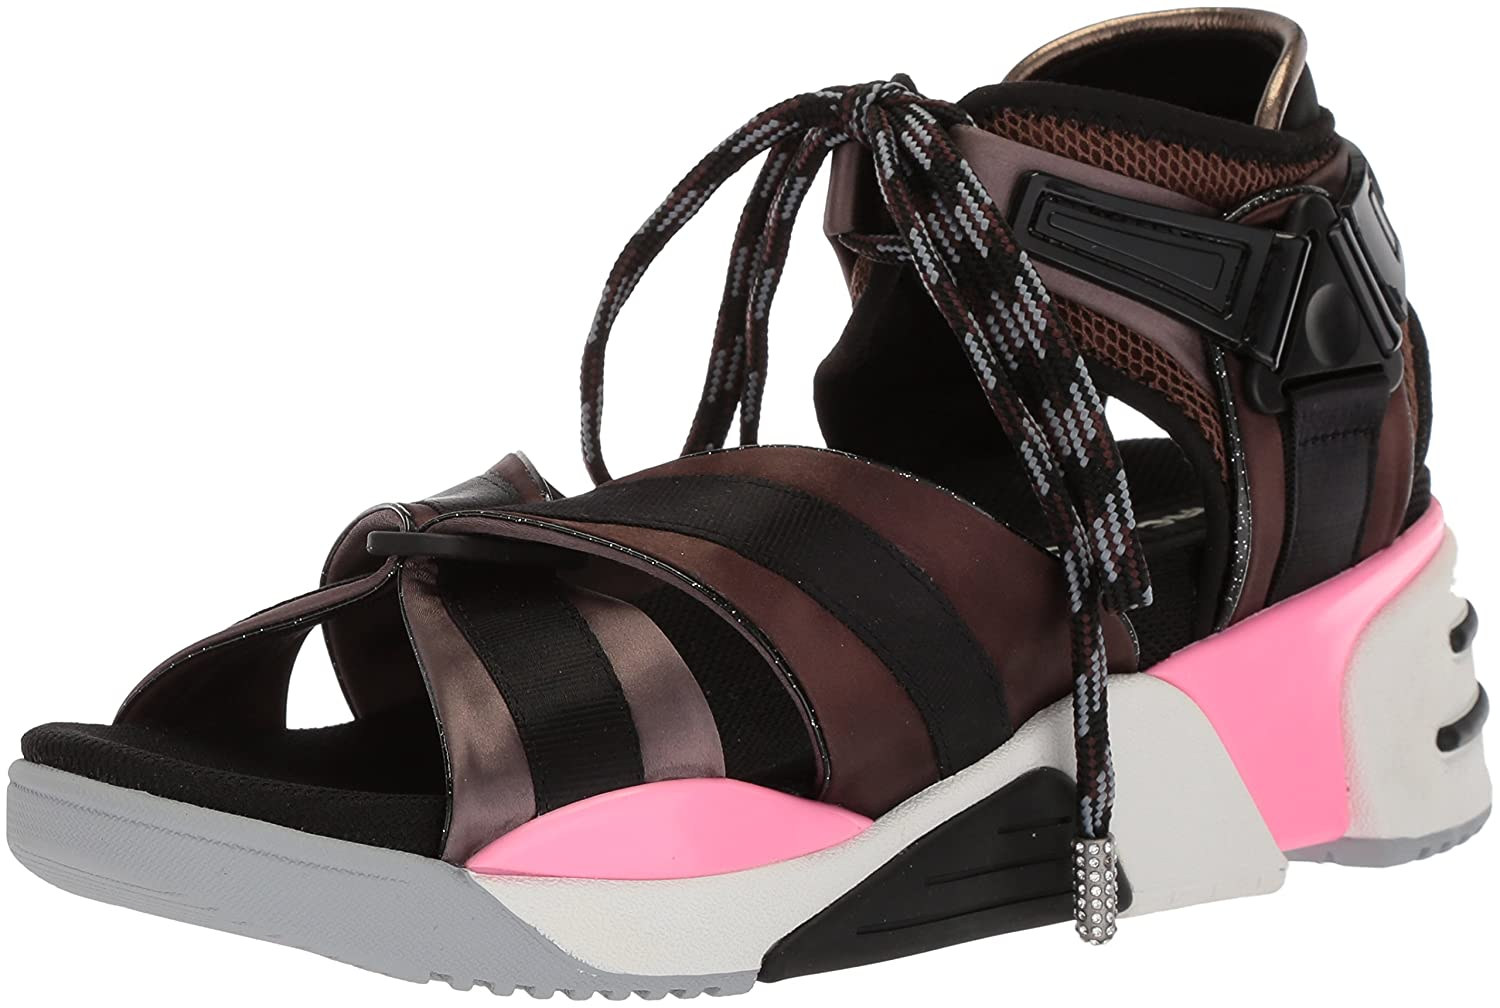 Marc Jacobs Women's Somewhere Sport Sandal B075Y66HXP 39 M EU (9 US)|Black/Multi